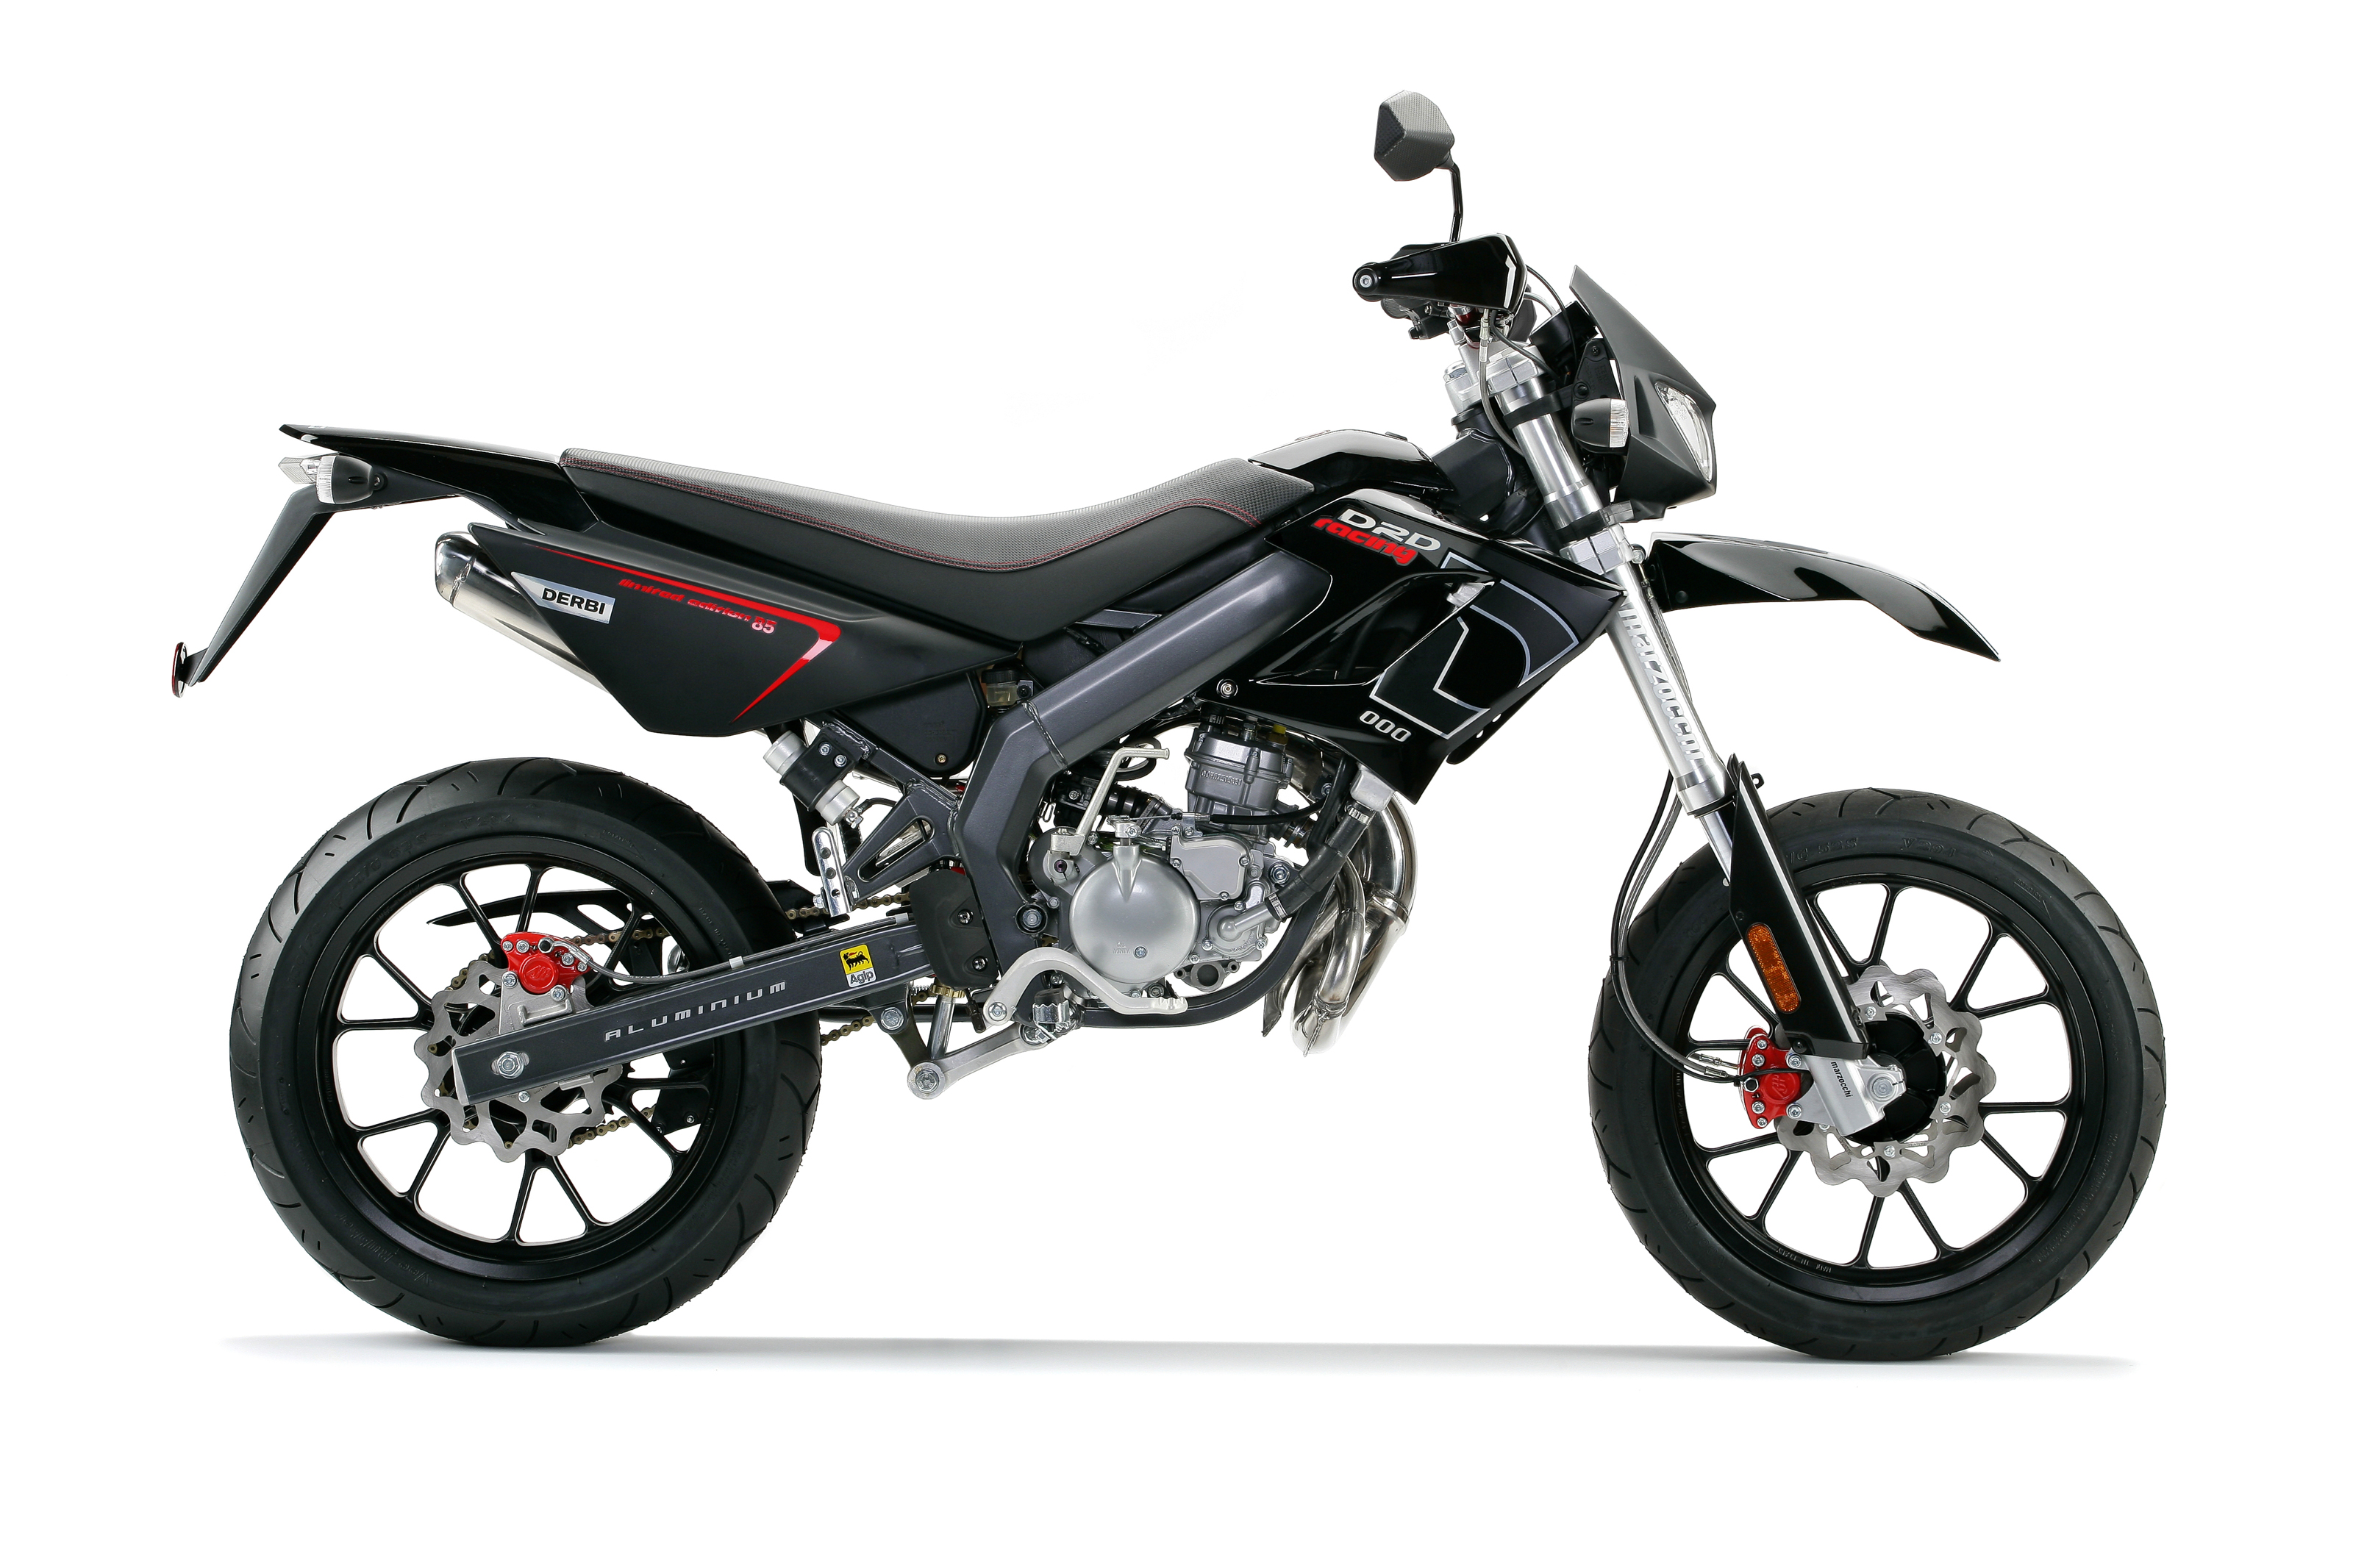 Derbi Senda DRD Evo 50 SM Limited Edition 2011 images #71219